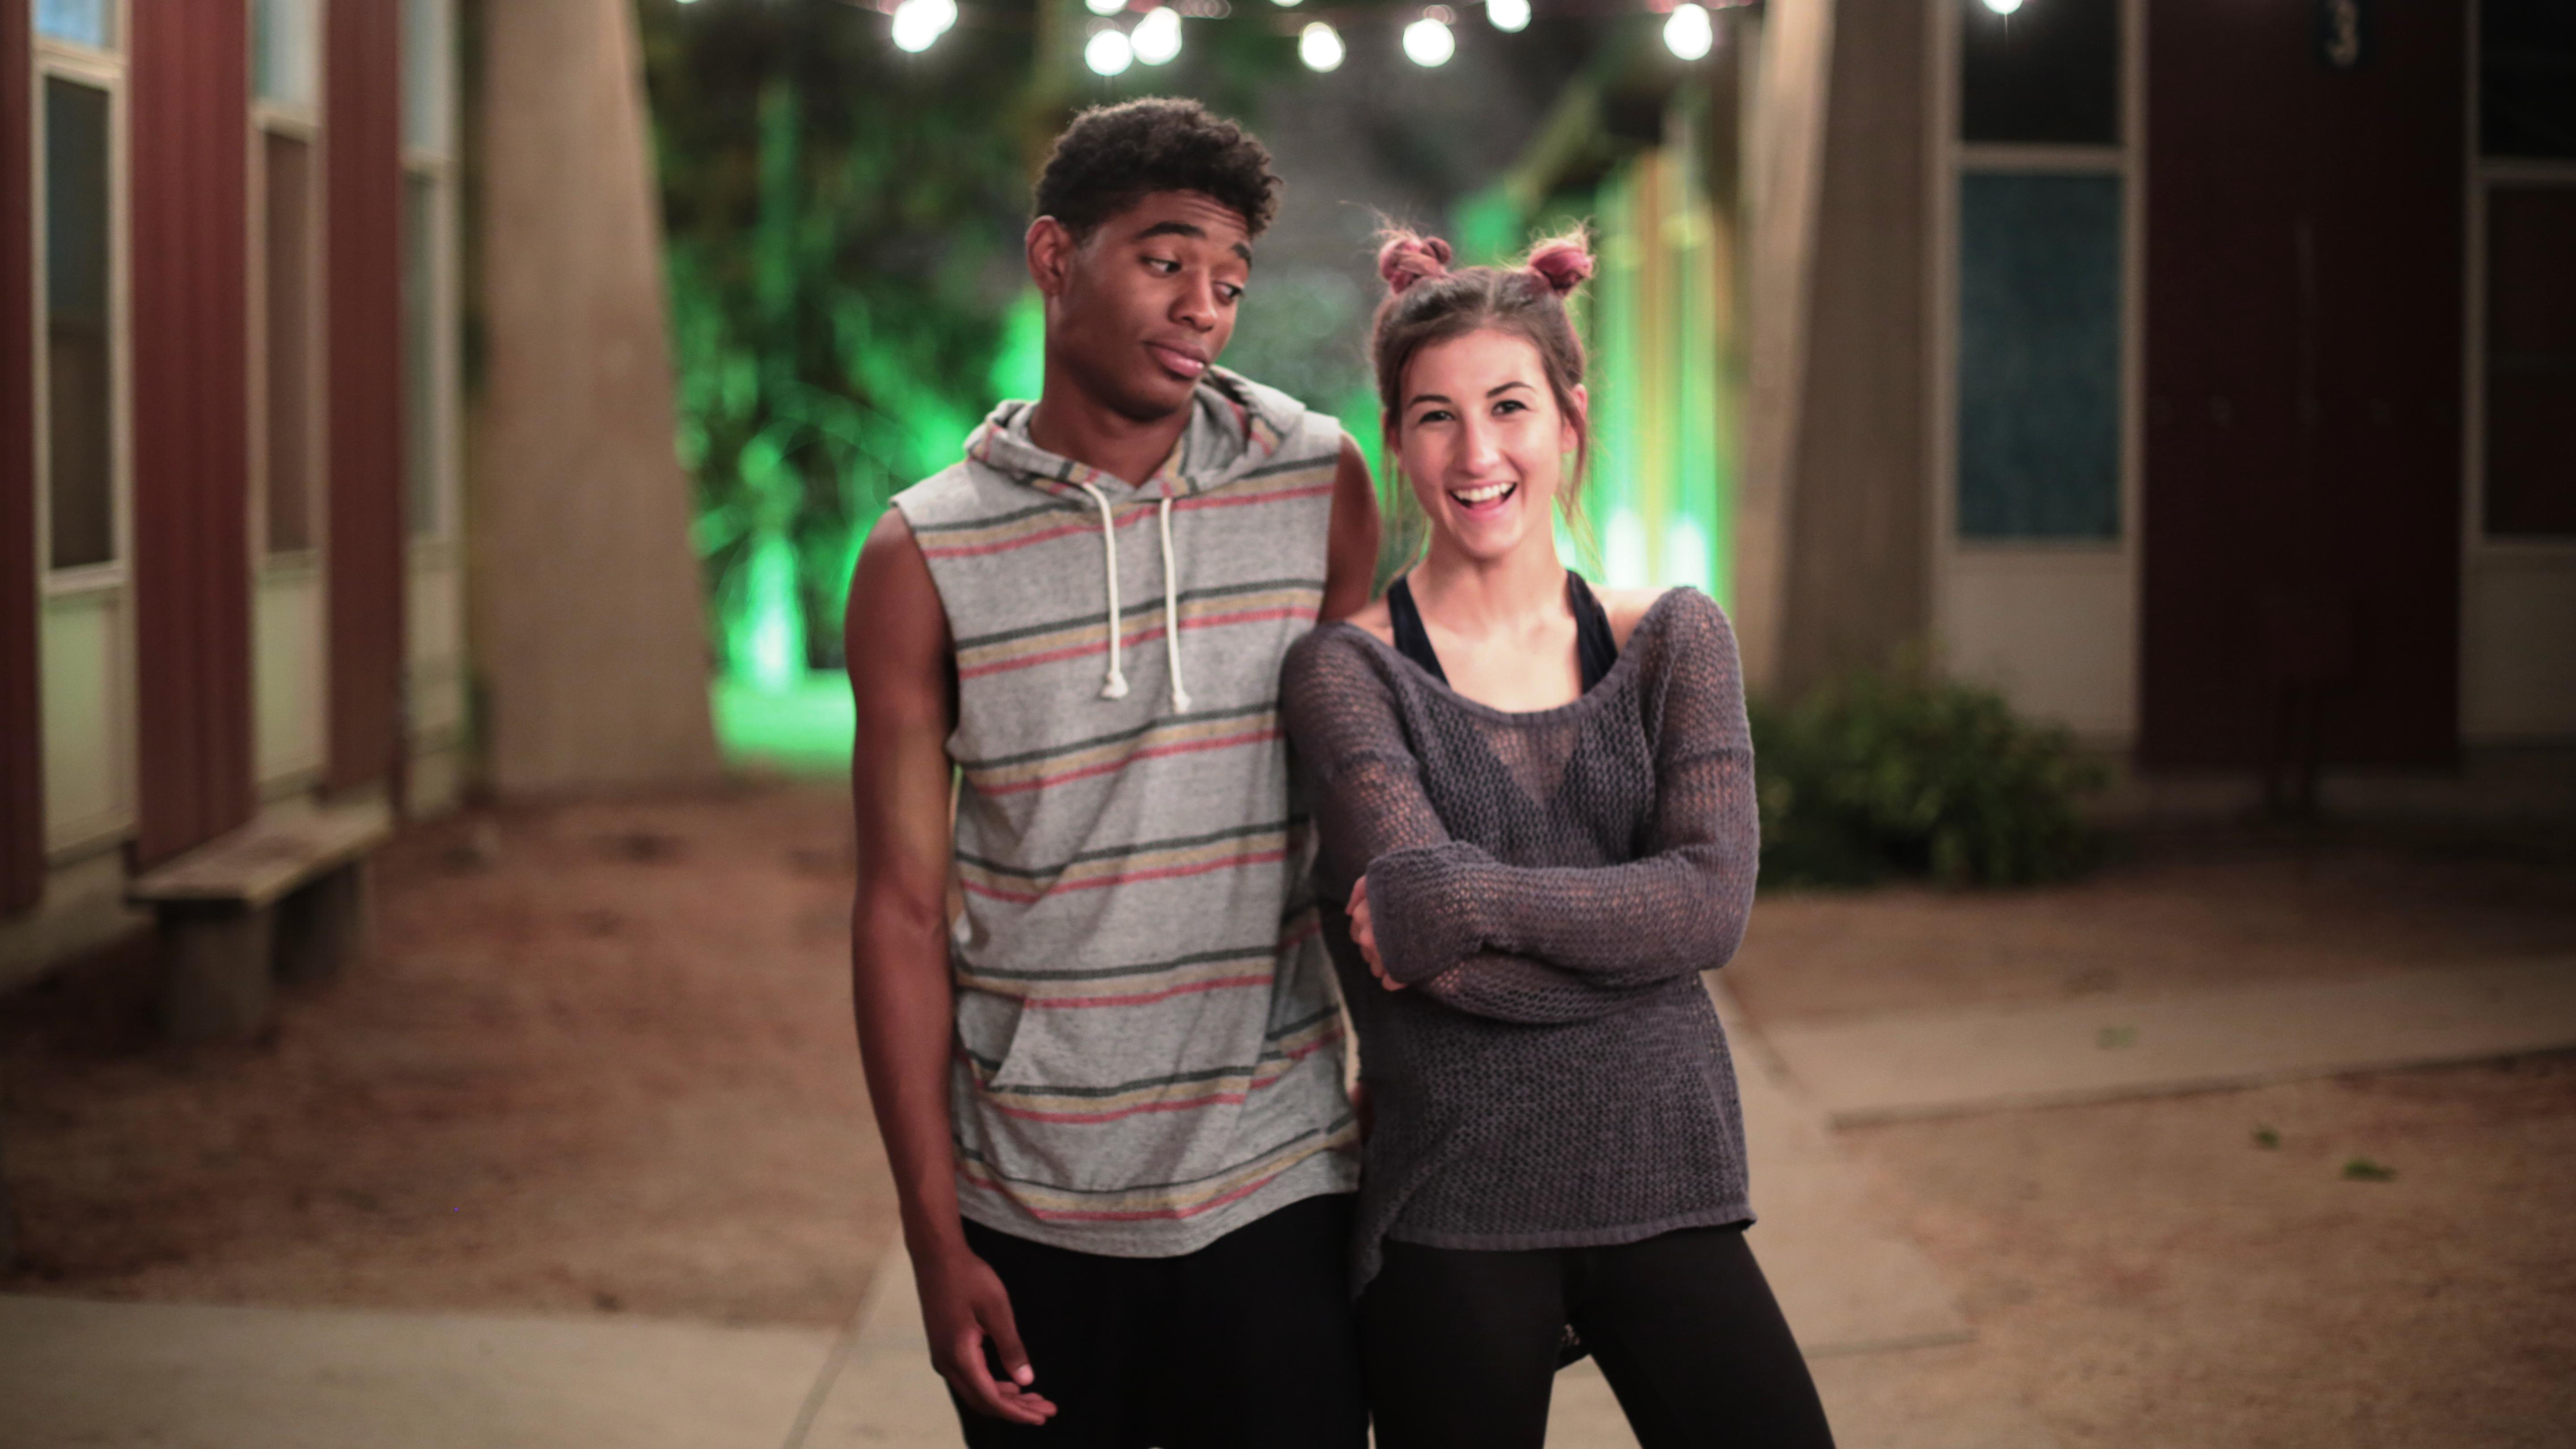 'Dance Camp': YouTube's First Movie Has More Adult Themes Than Disney Musicals